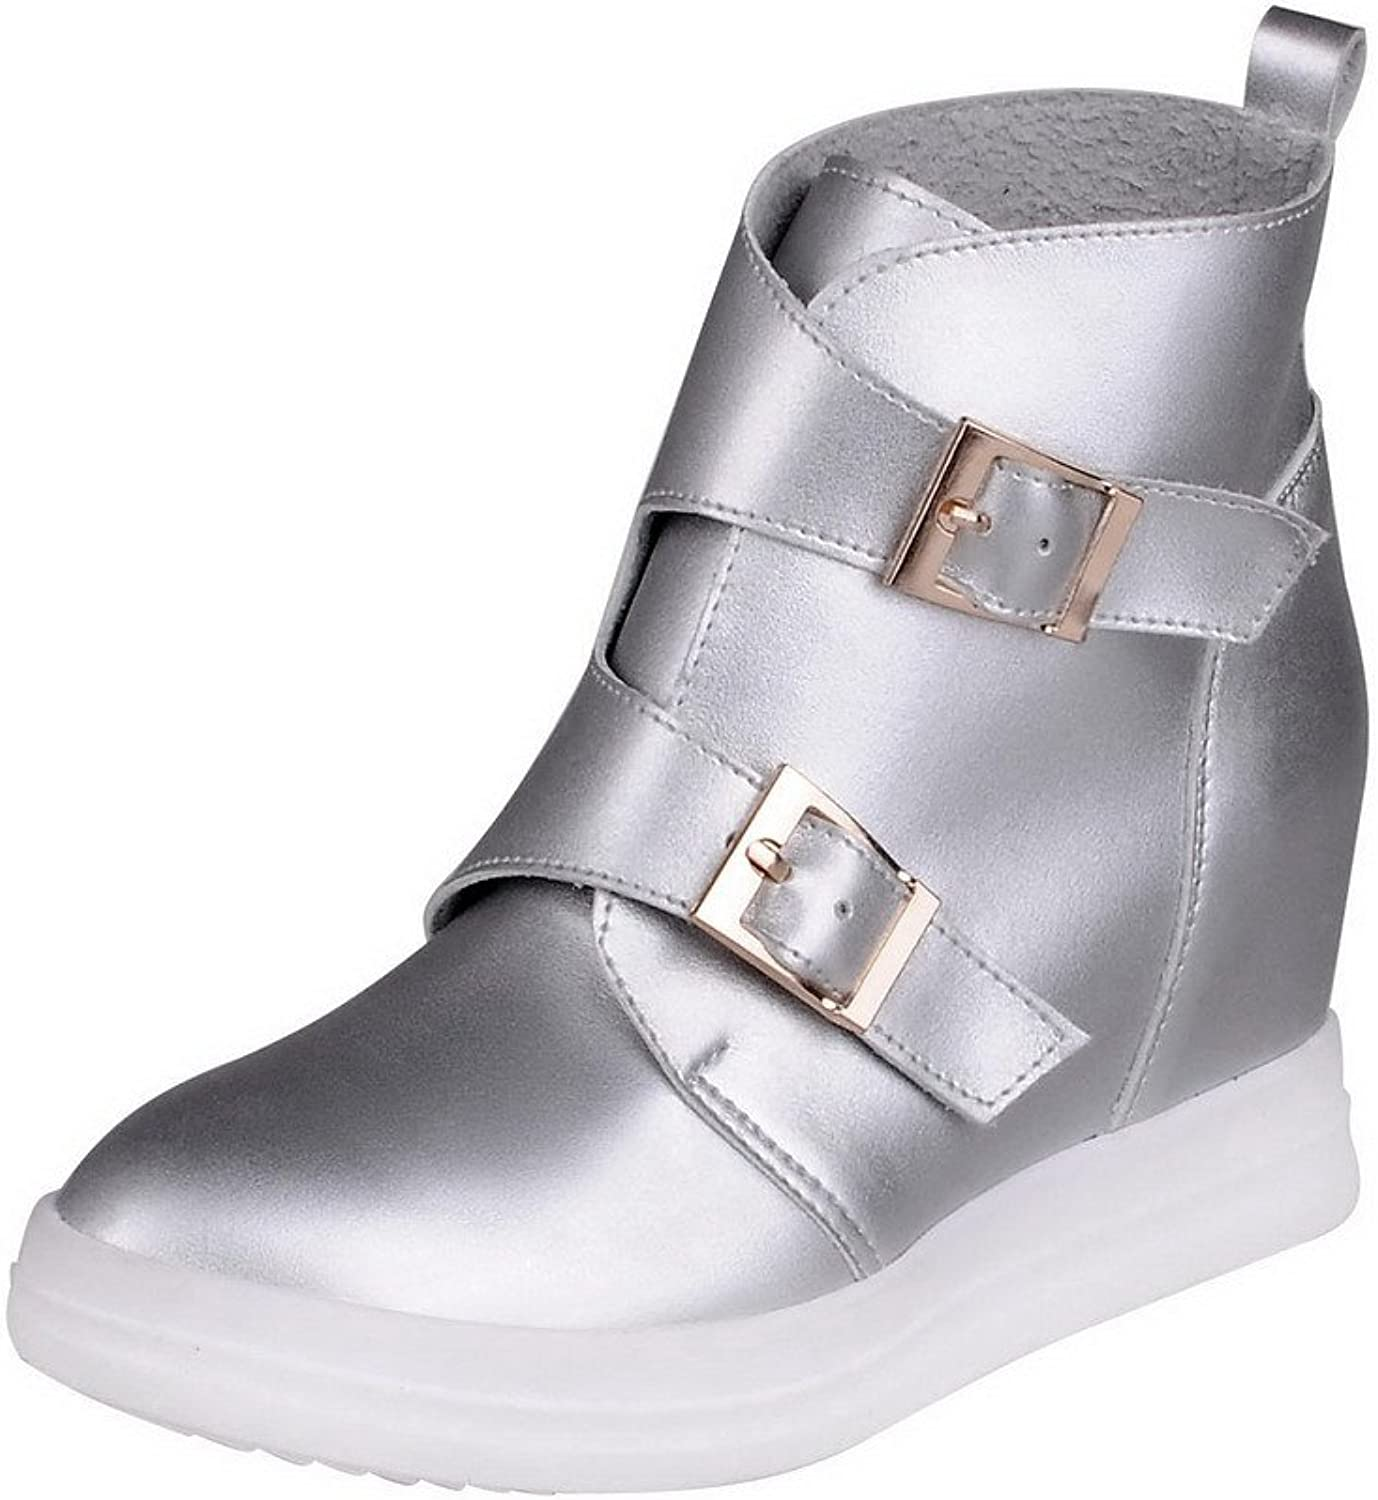 AllhqFashion Women's Pointed Closed Toe Ankle High High Heels Solid Pu Boots